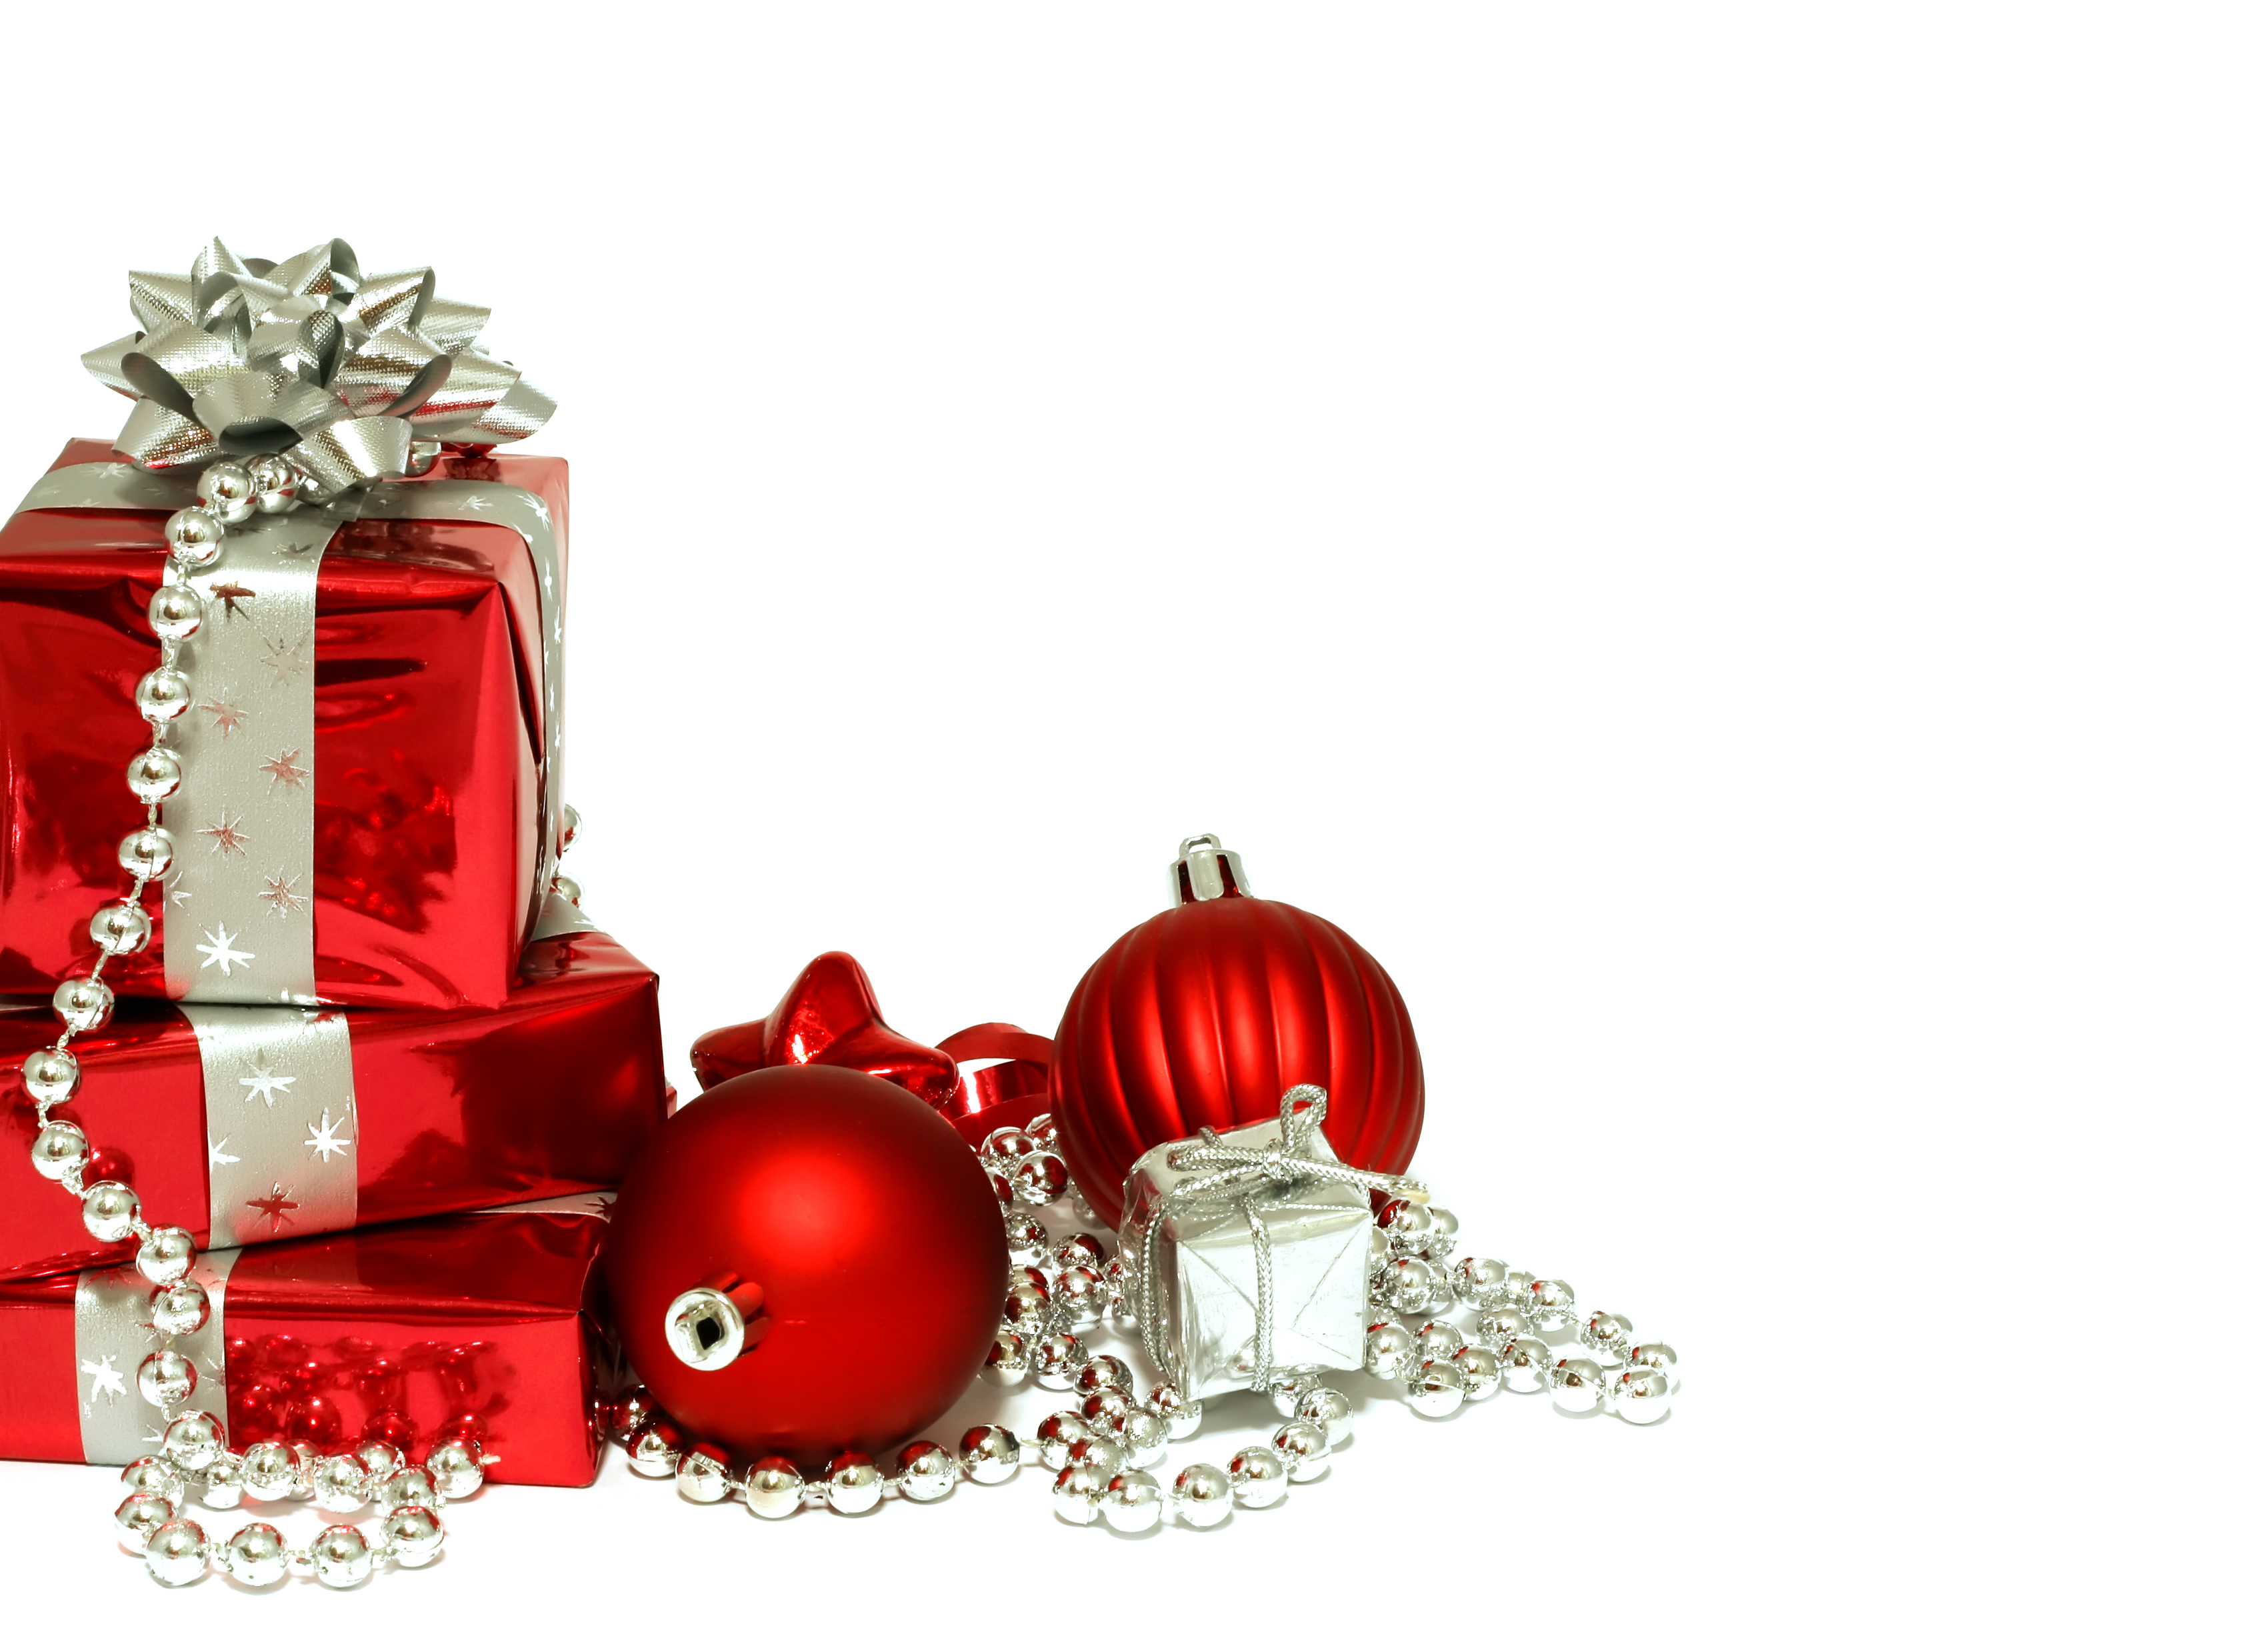 Christmas wallpapers Red Christmas decorations and gifts on Christmas 3402x2454